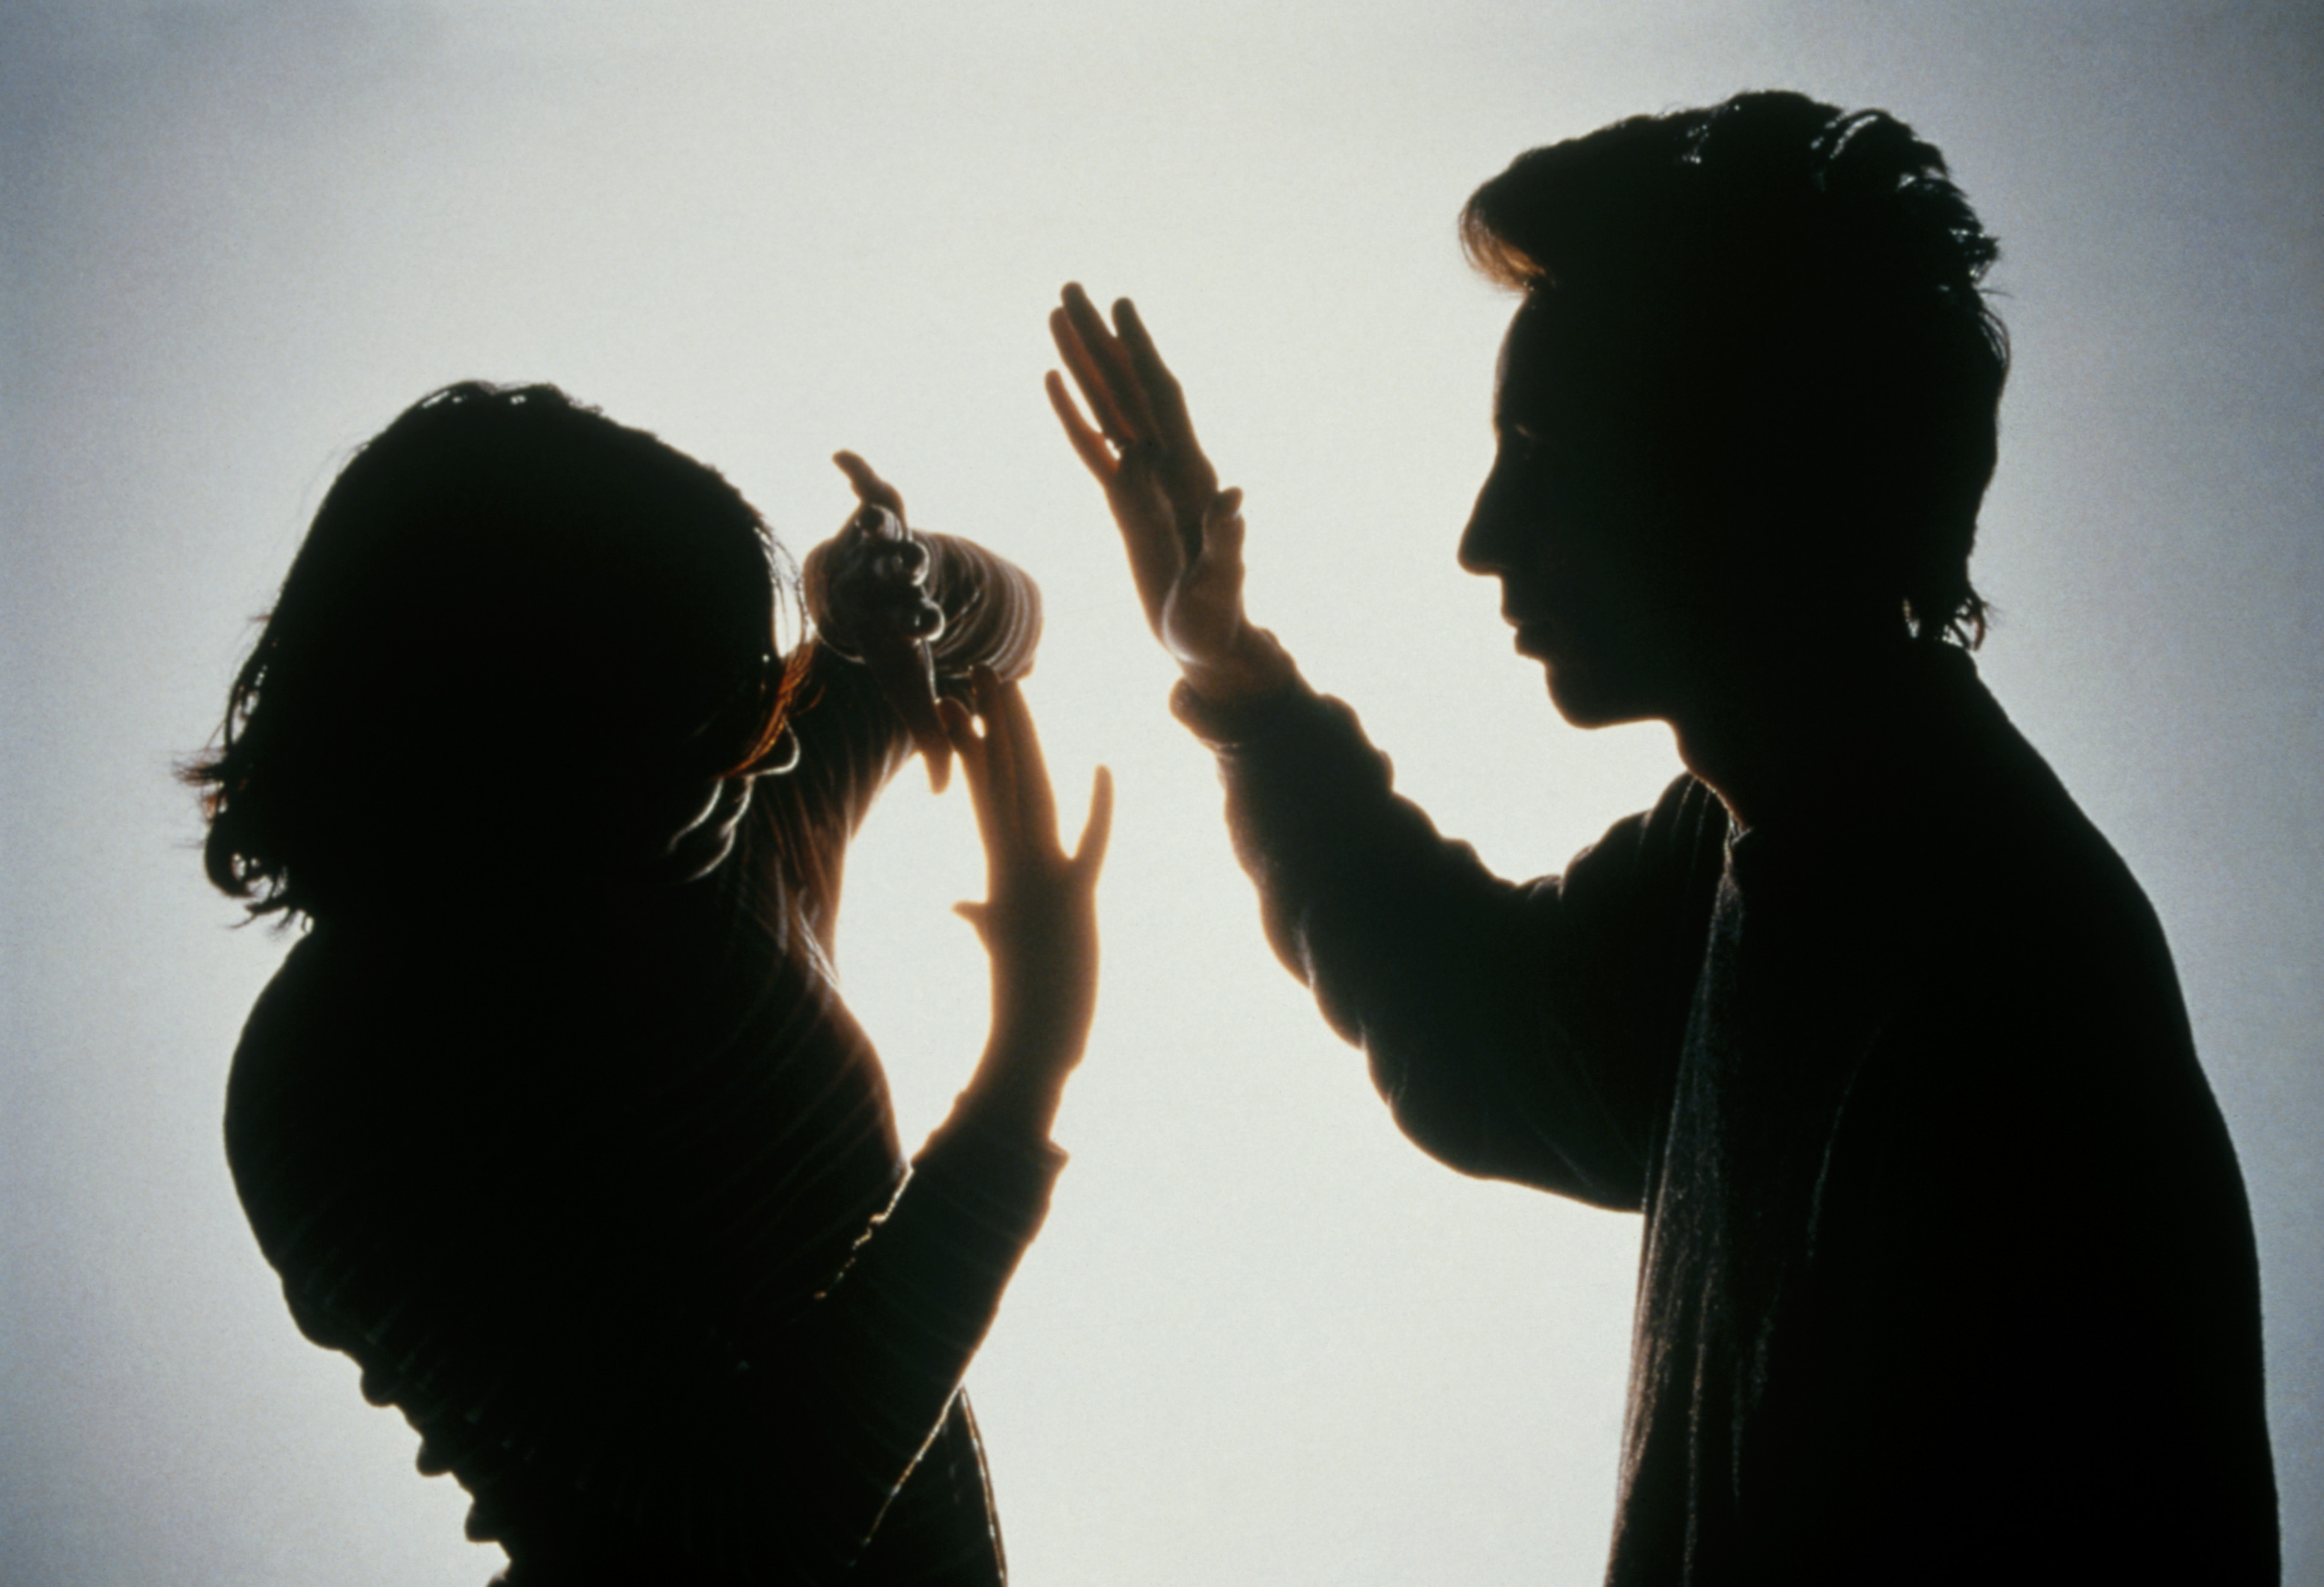 an introduction to the issue of domestic violence and male hatred of women in todays society Violence essay domestic violence domestic violence against women by men is or do you feel that it is your duty as a part of society to help solve this issue.